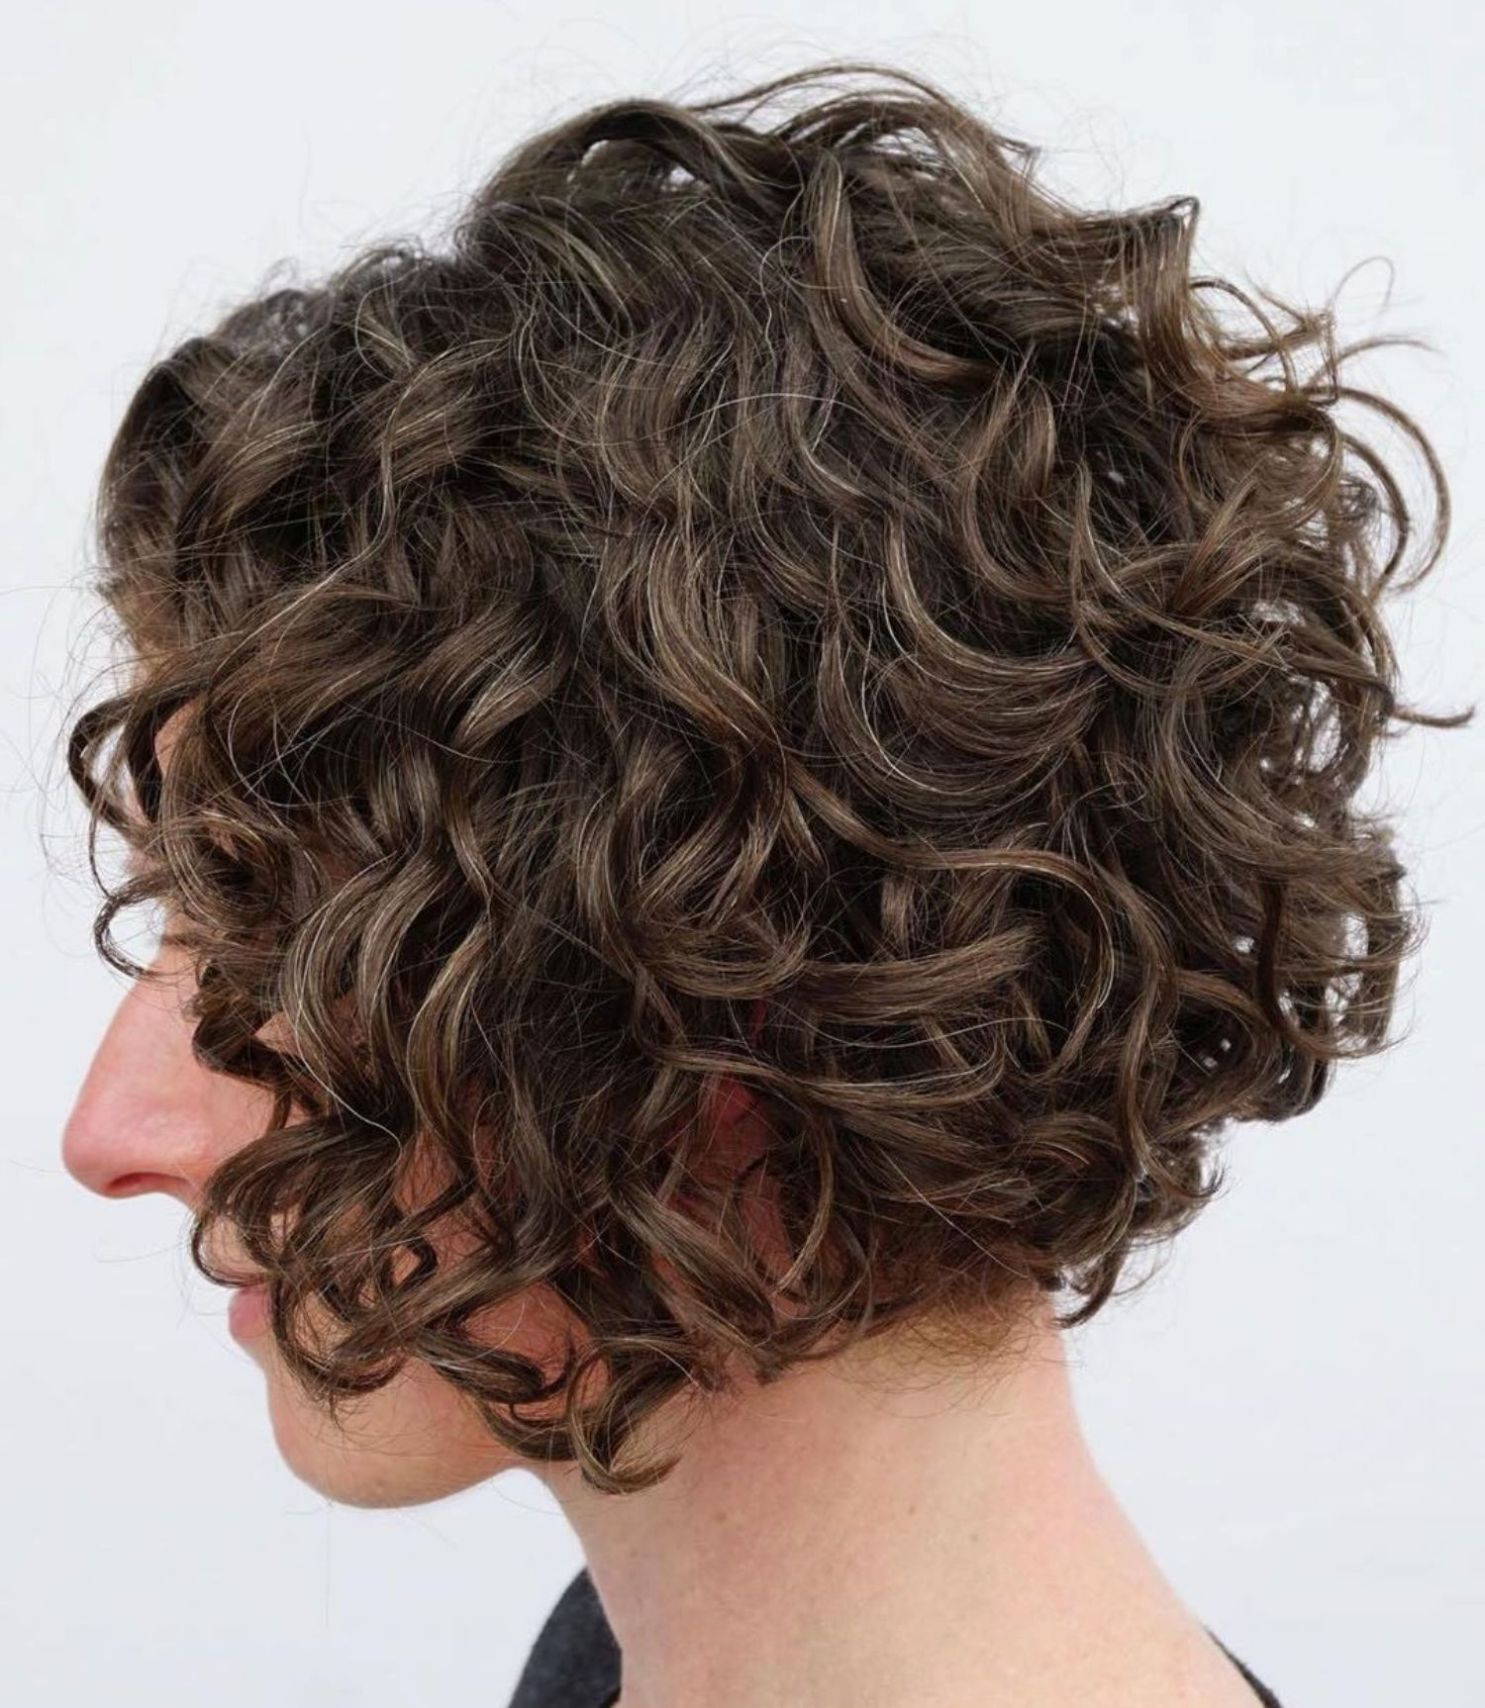 60 Most Delightful Short Wavy Hairstyles In 2020 Short Wavy Hair Short Layered Curly Hair Haircuts For Curly Hair